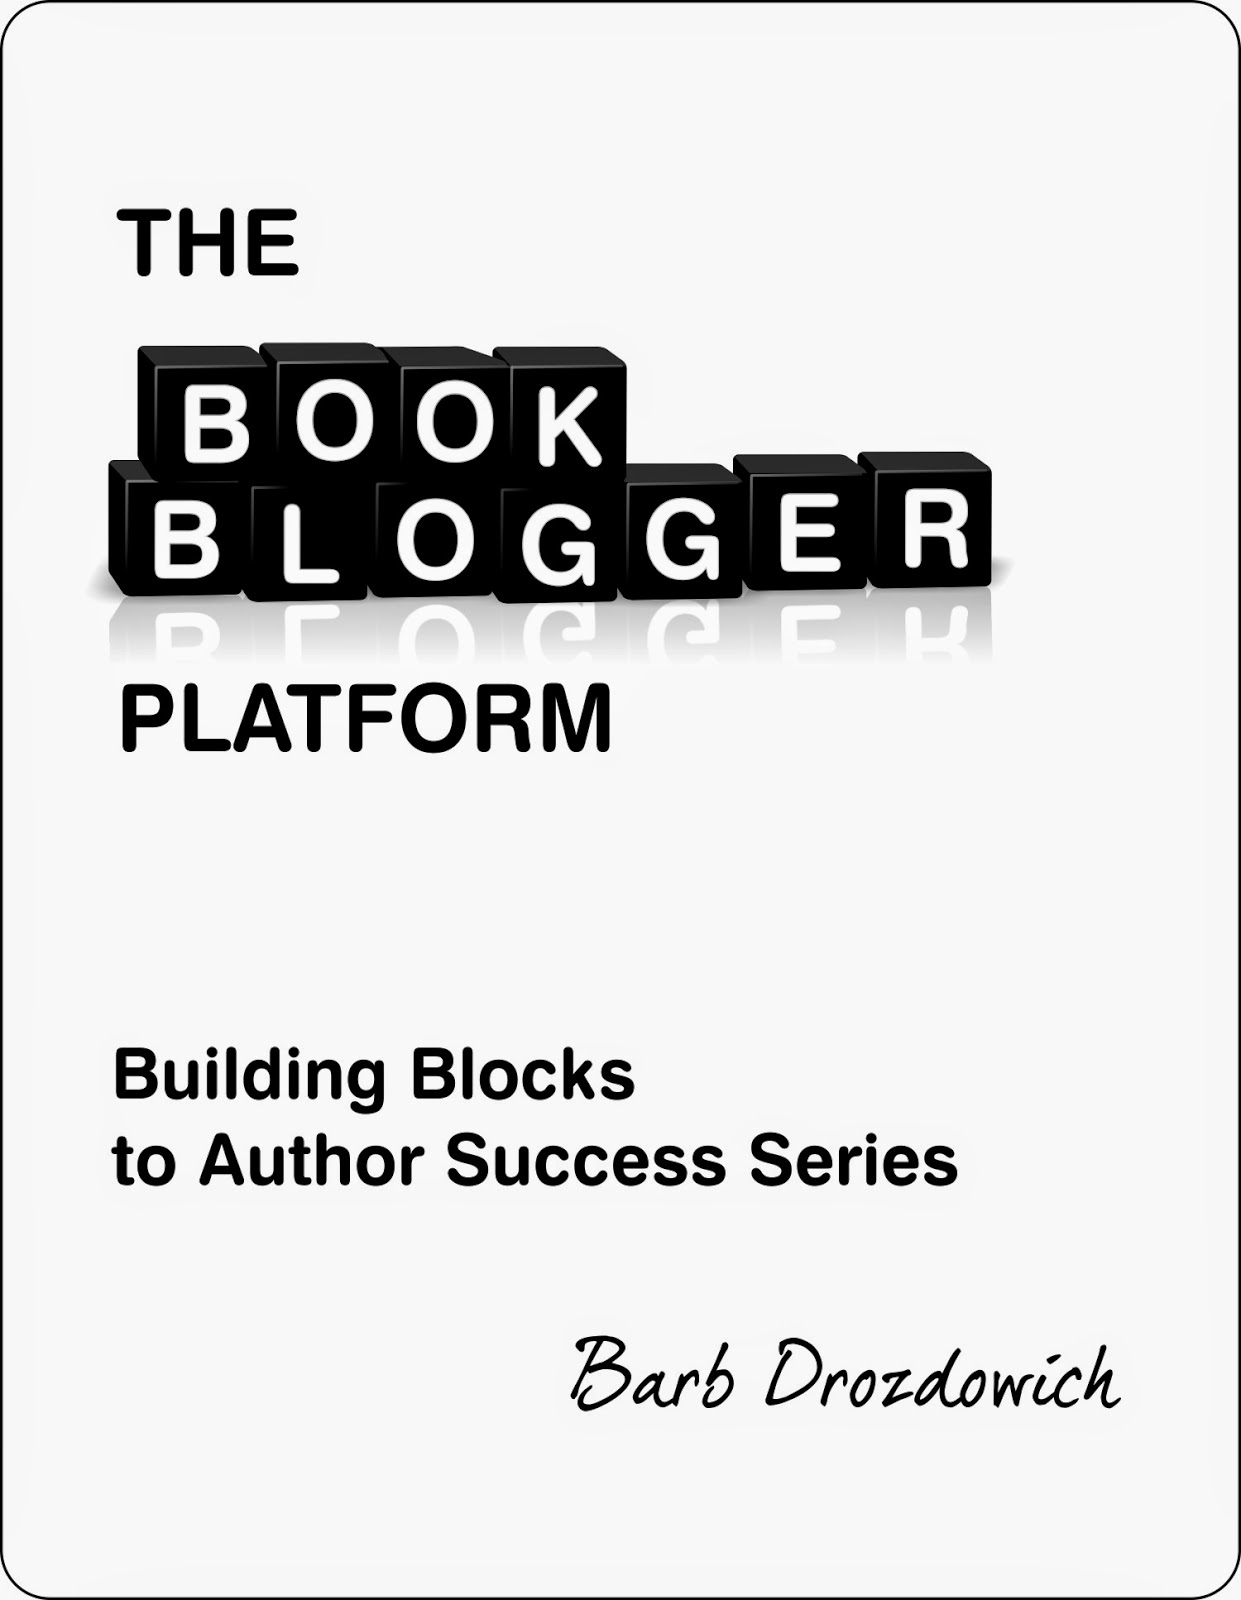 Excerpt from The Book Blogger Platform by Barb Drozdowich